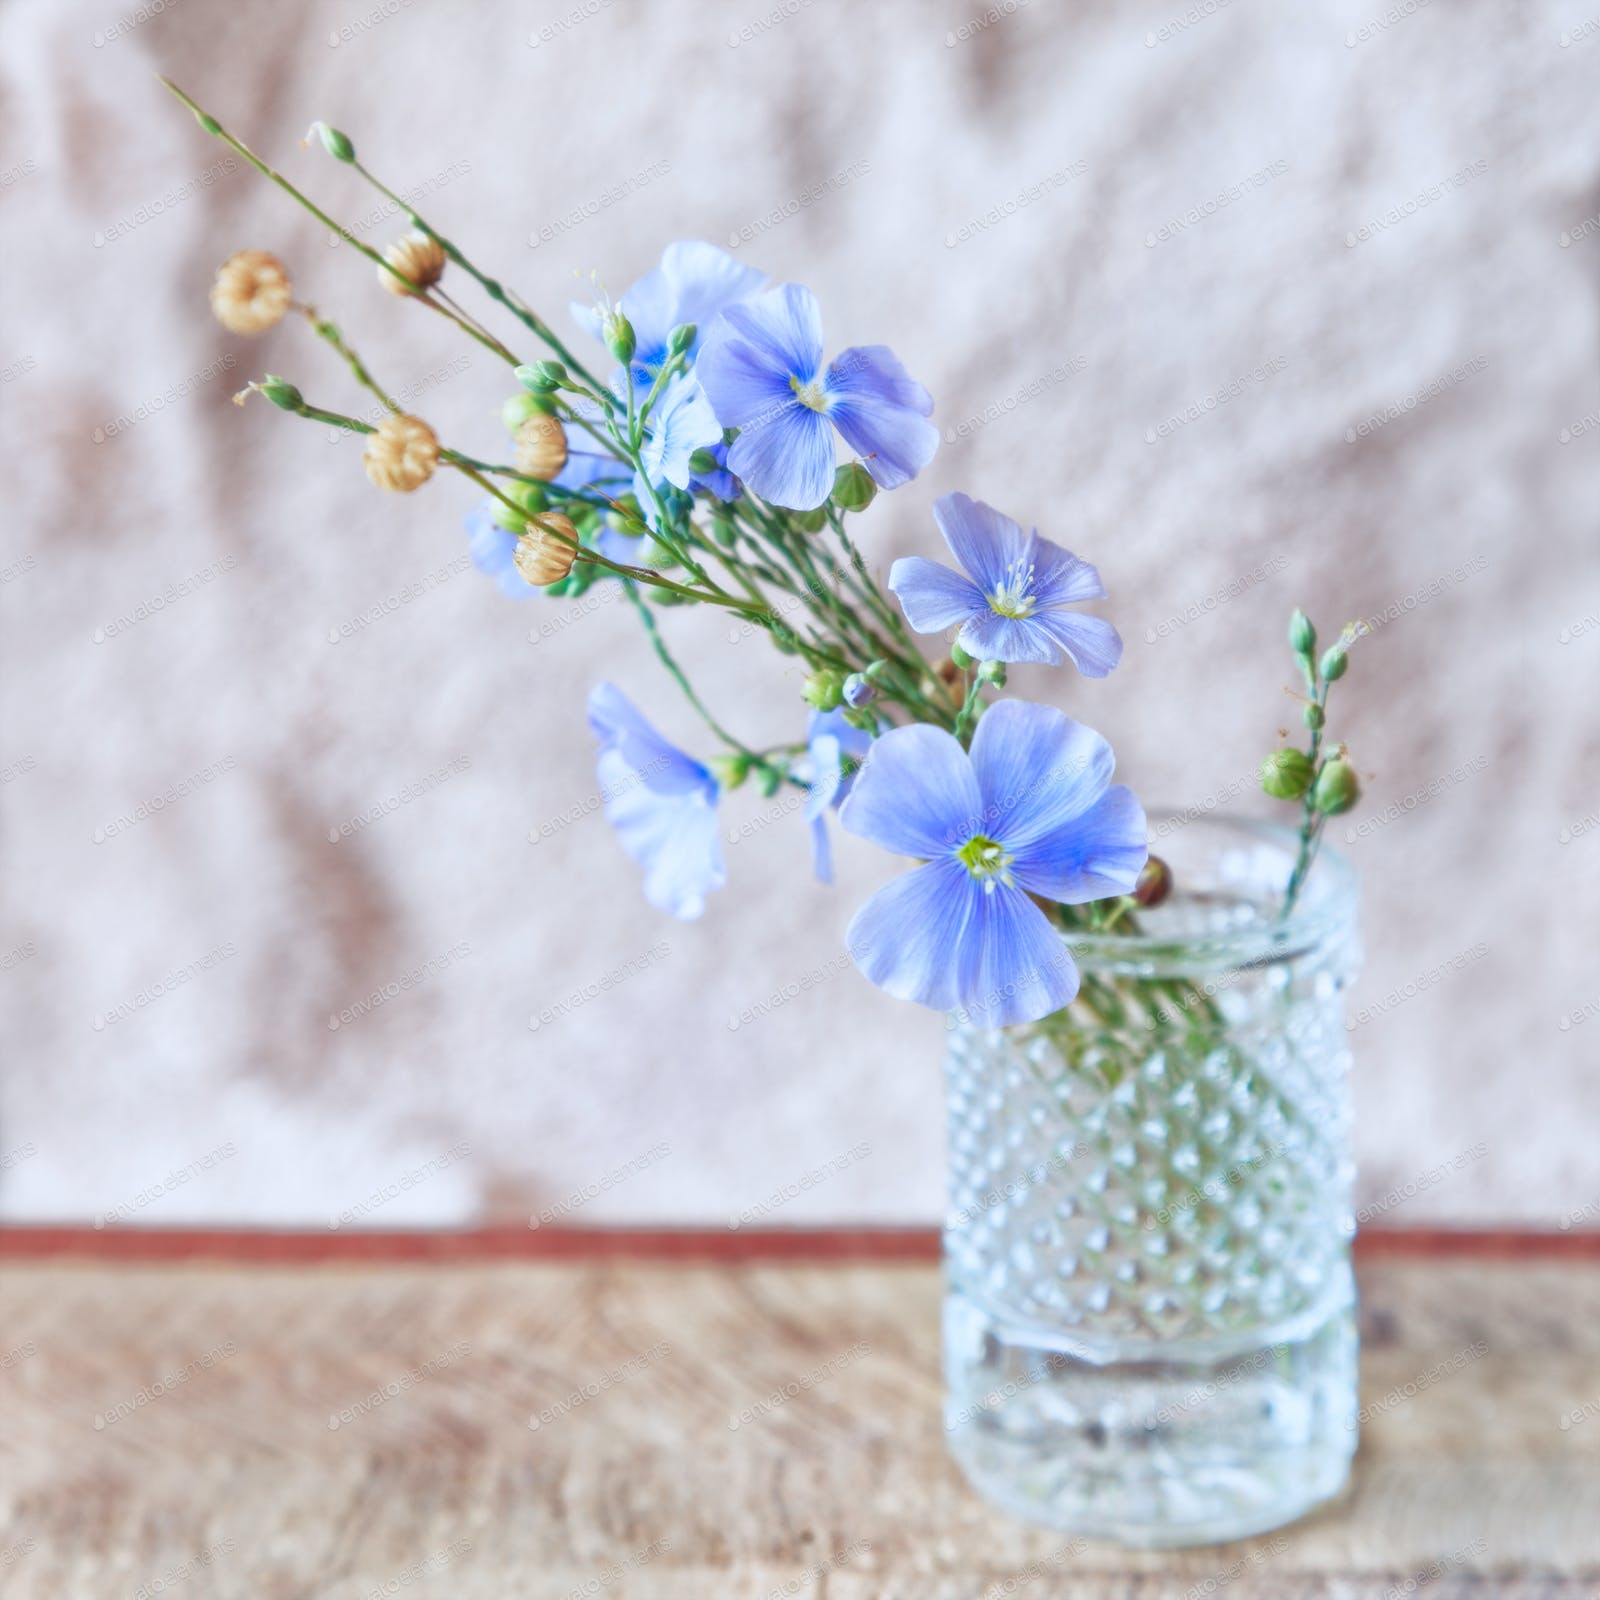 Sprigs Of Flax With Flowers Photo By Alekssg On Envato Elements